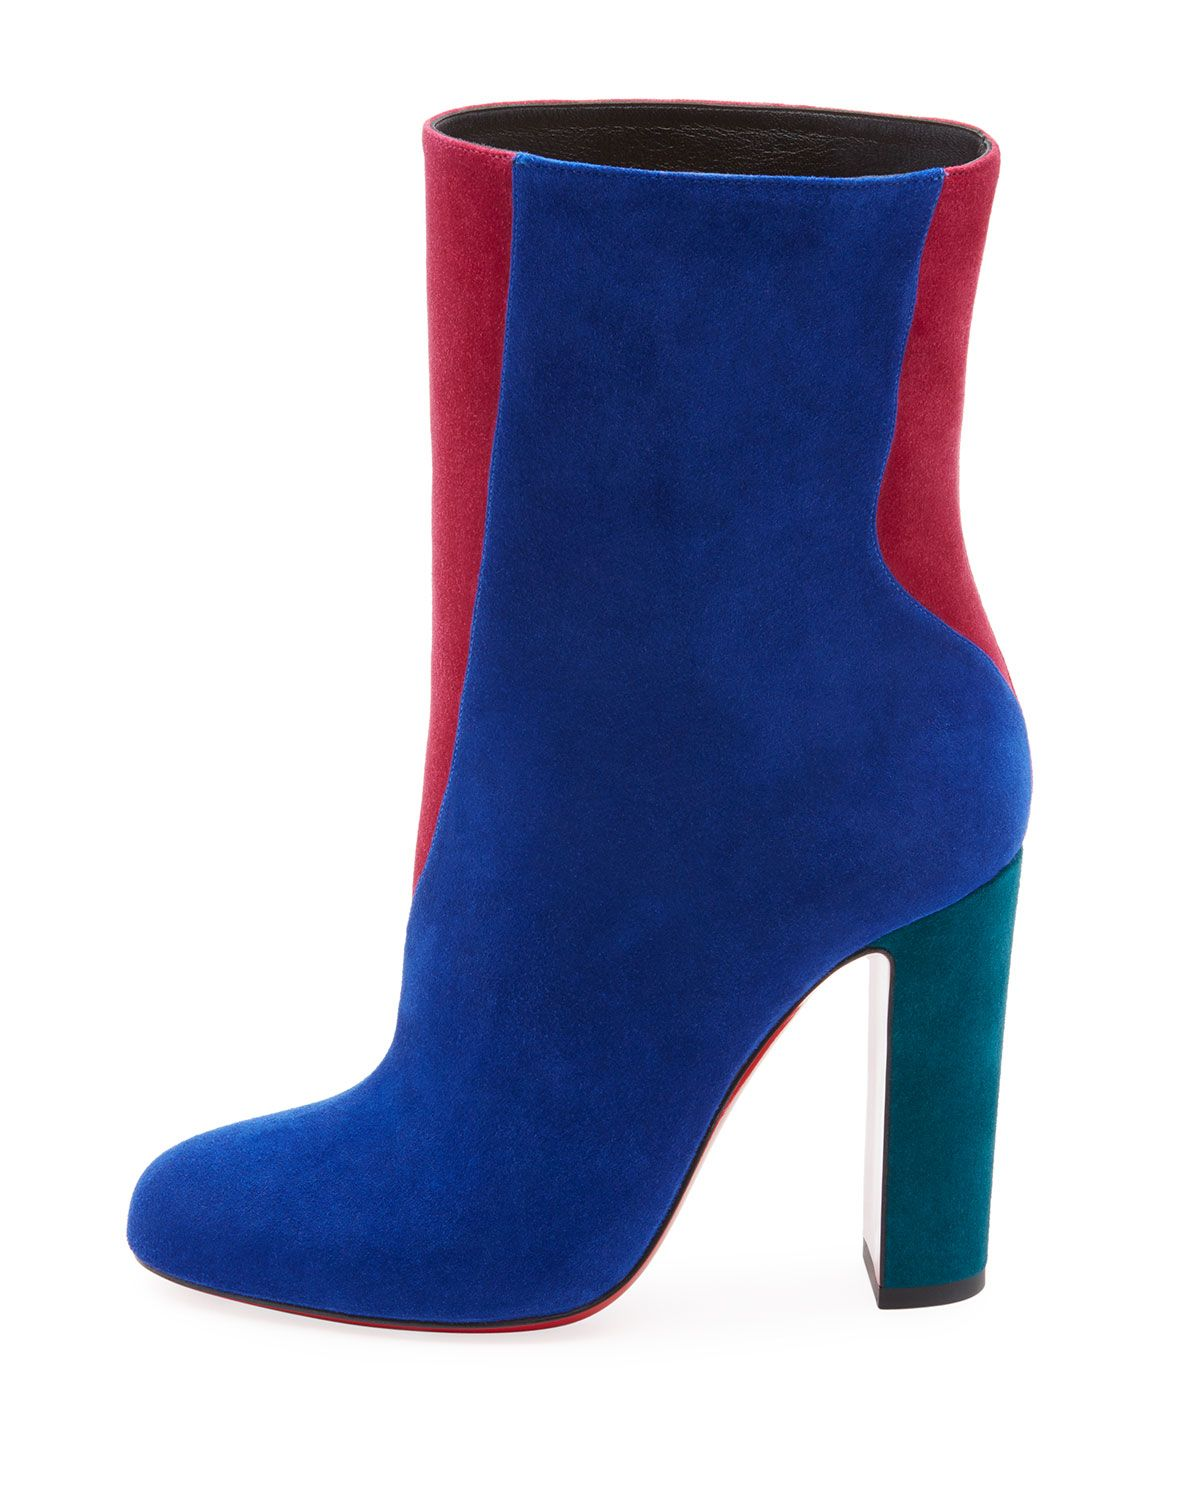 ec7c7241b5a Christian Louboutin Botty Double Colorblock Suede Red Sole Booties ...